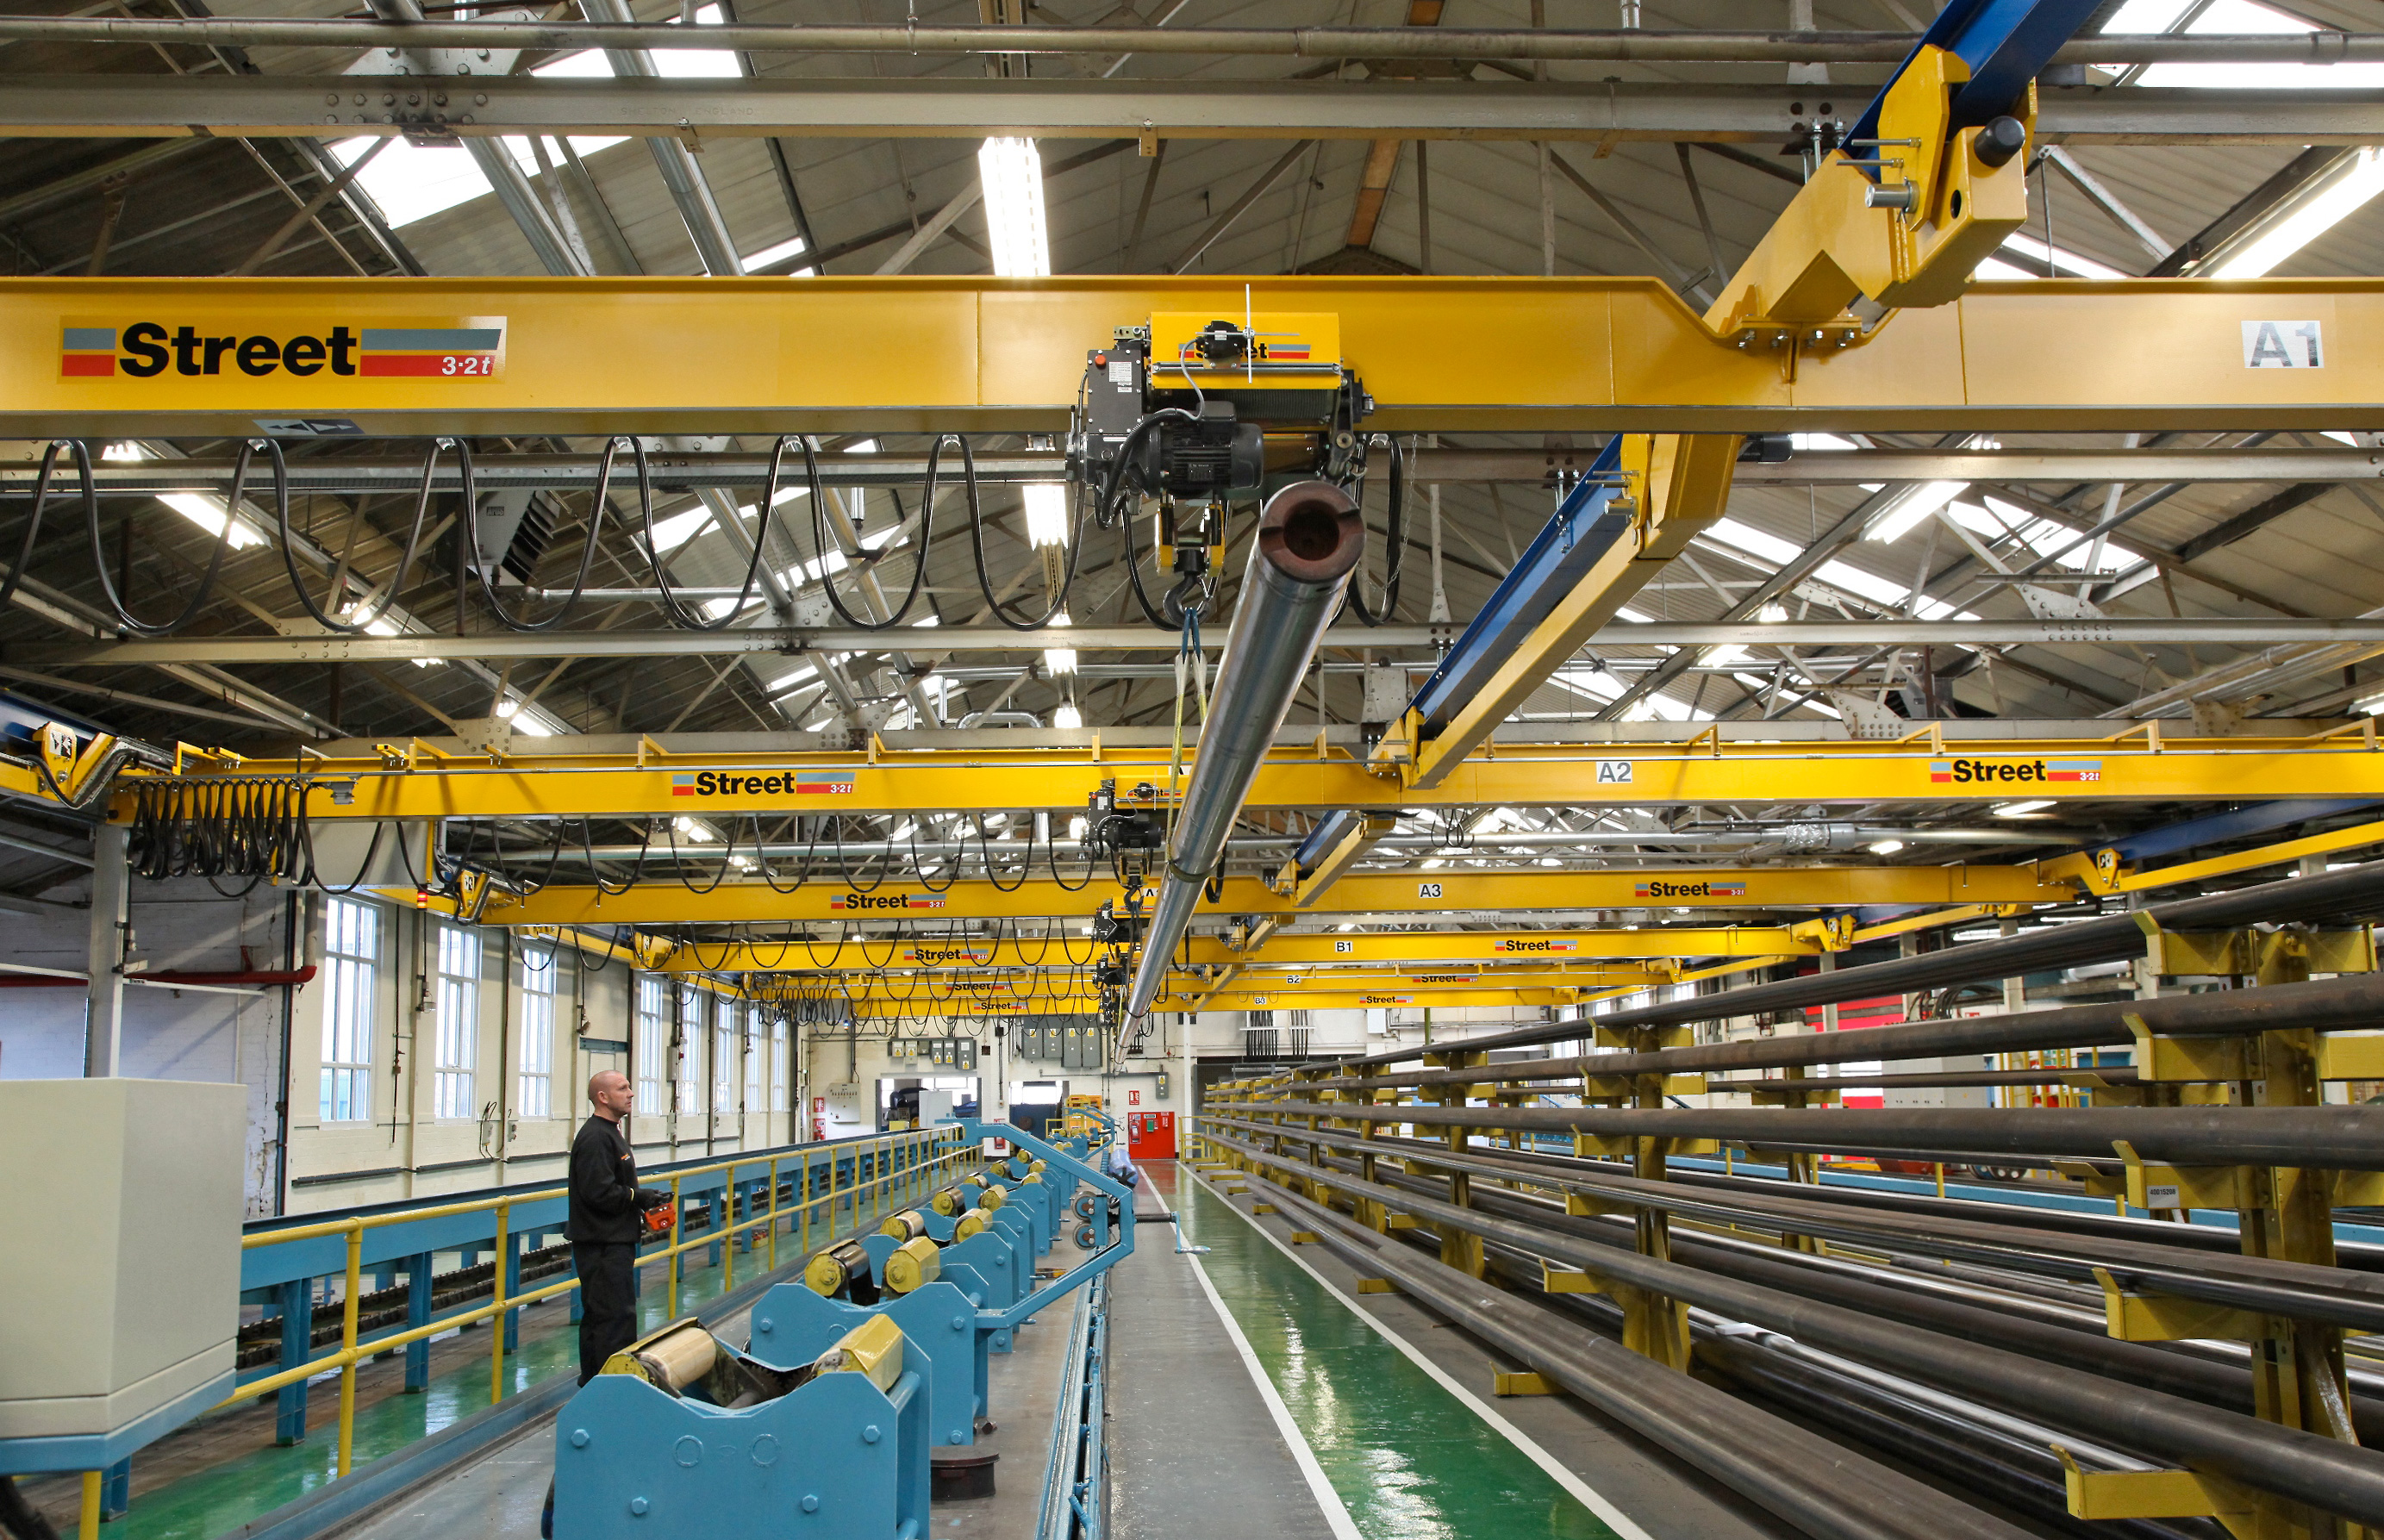 Street Crane Radical Overhead Crane Design For Flexible